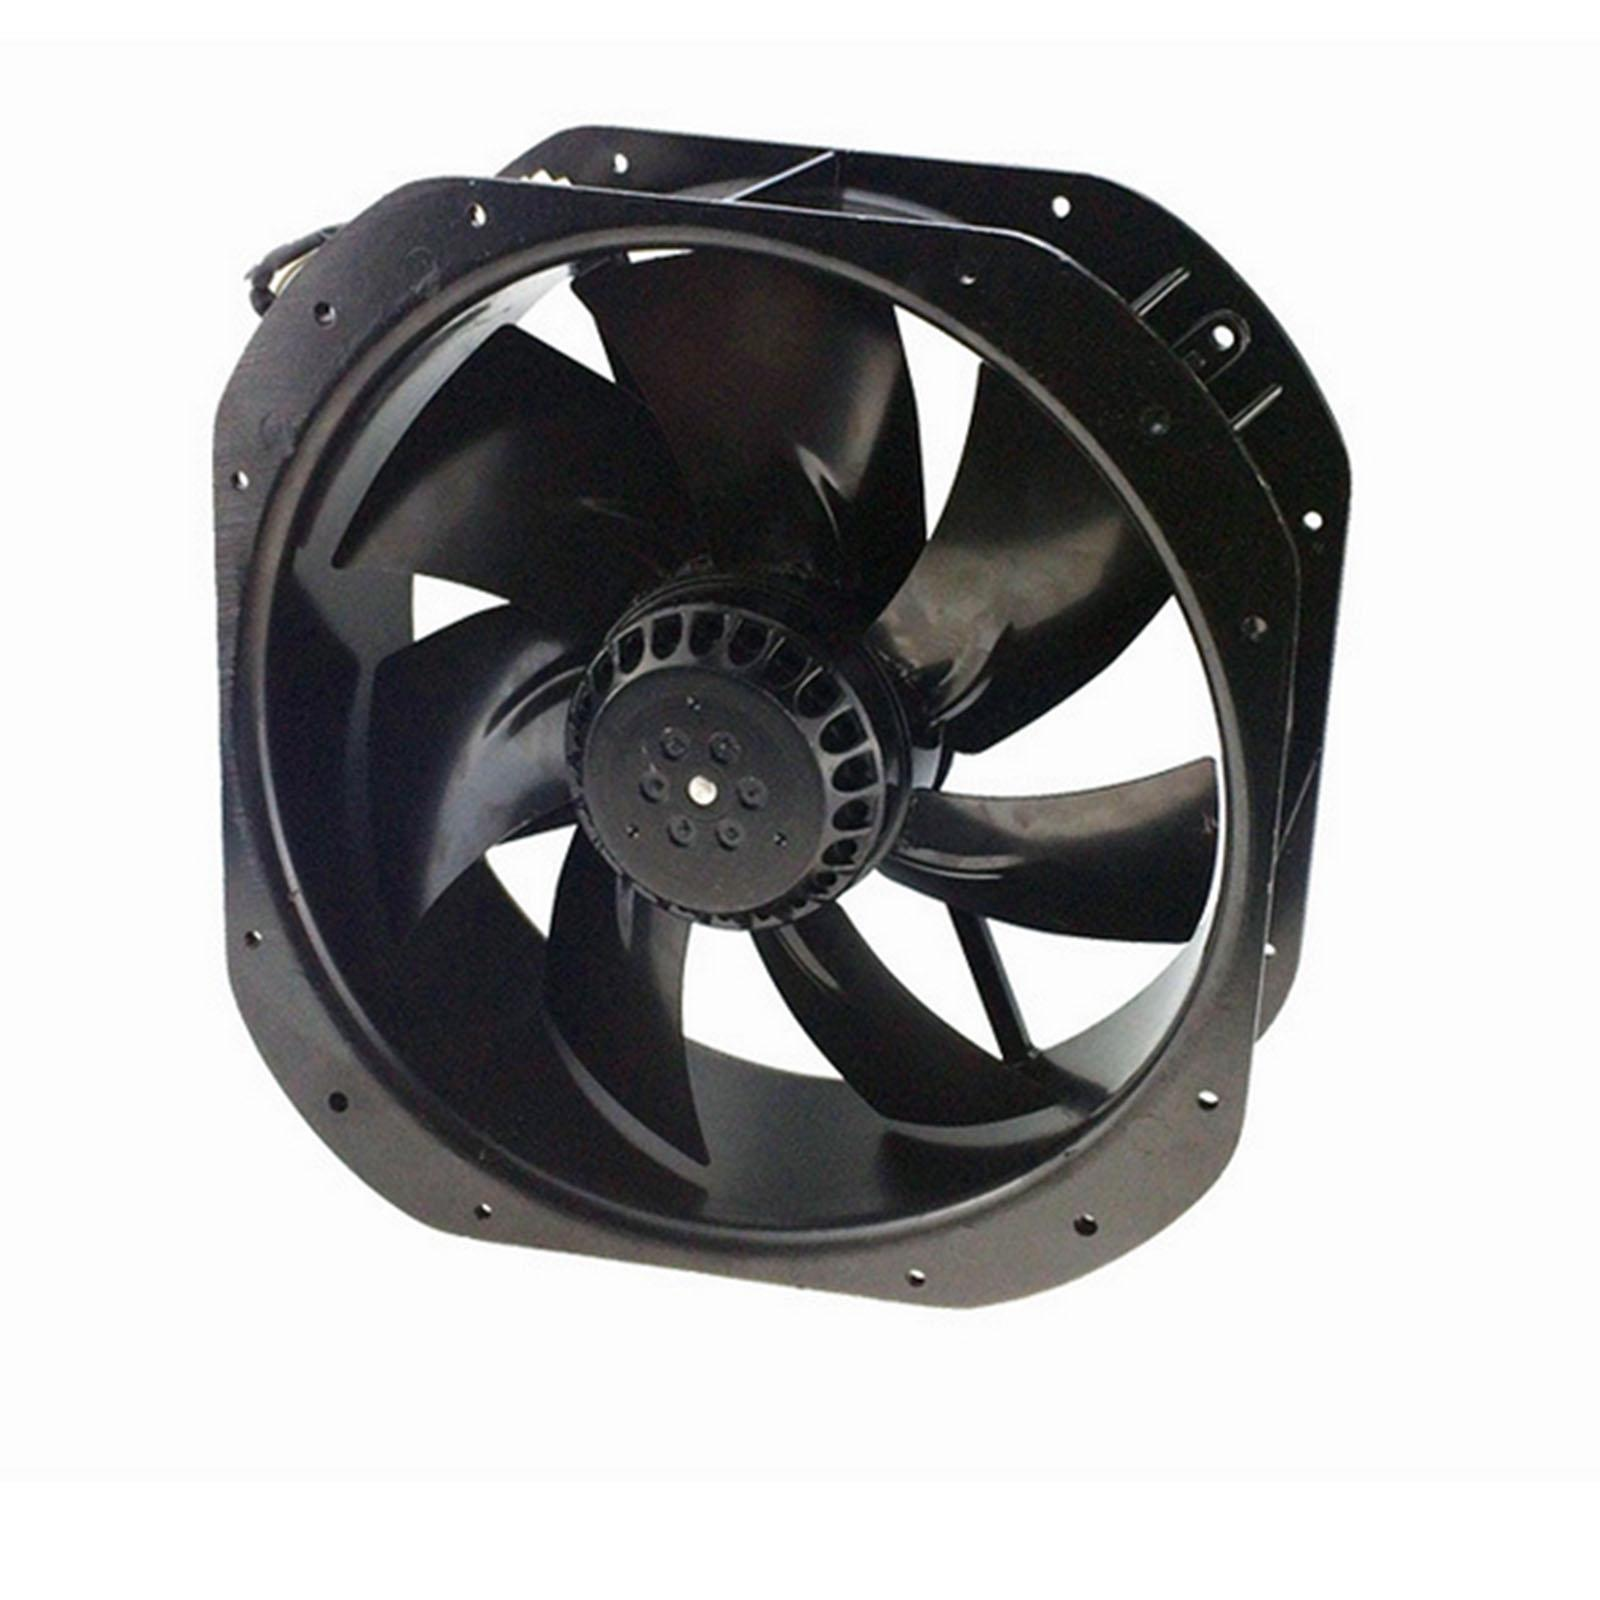 220V AC 280x280x80mm Axial Radiator Fan 1341CFM 2400RPM Ball Bearing High Speed220V AC 280x280x80mm Axial Radiator Fan 1341CFM 2400RPM Ball Bearing High Speed